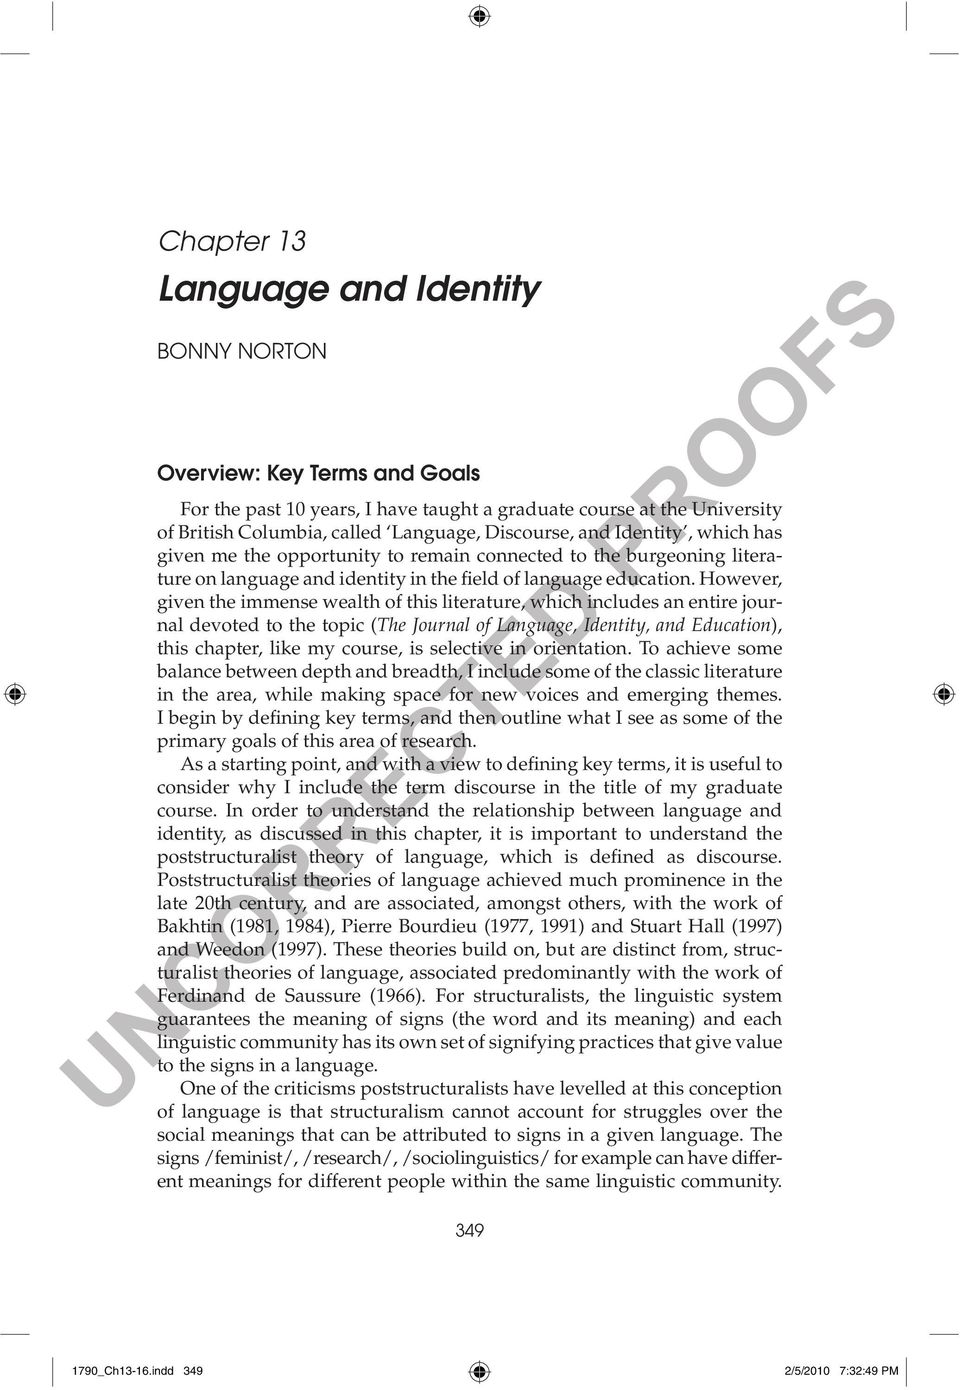 However, given the immense wealth of this literature, which includes an entire journal devoted to the topic (The Journal of Language, Identity, and Education), this chapter, like my course, is